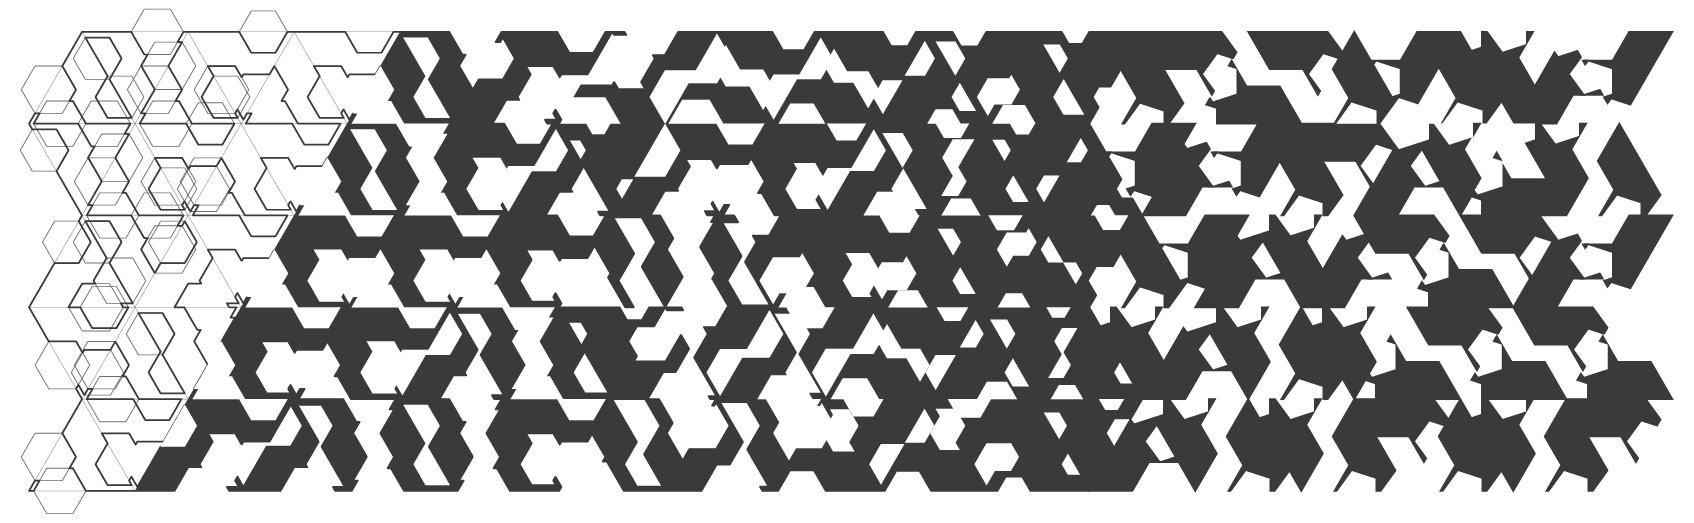 2D grid with triangle base generated from parameters, rotations, and variations in the scaling and frequency of hexagonal and pentagonal cut-outs